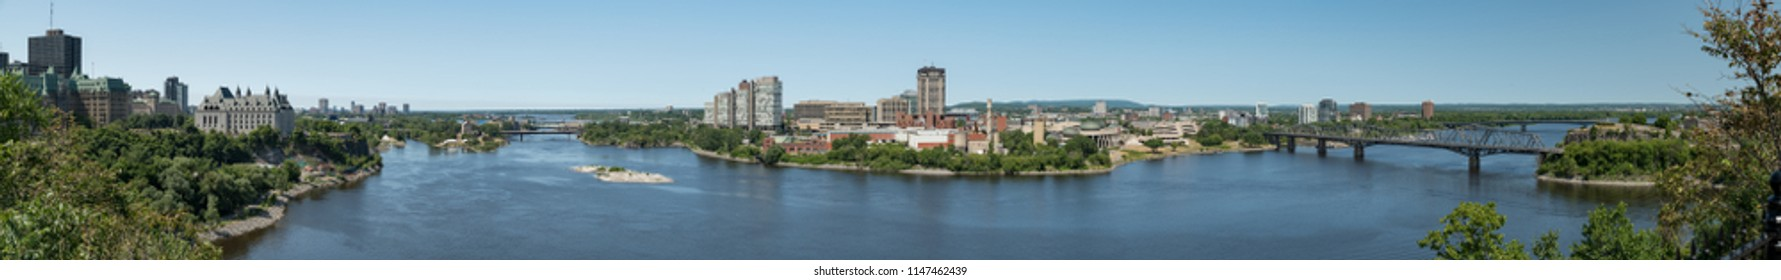 Gatineau, Quebec, Canada - July 12, 2018:  Panoramic view looking across Ottawa River from Parliament Hill in Ottawa, Ontario.  Gatineau in middle, Ottawa at sides, Alexandra Bridge at right.